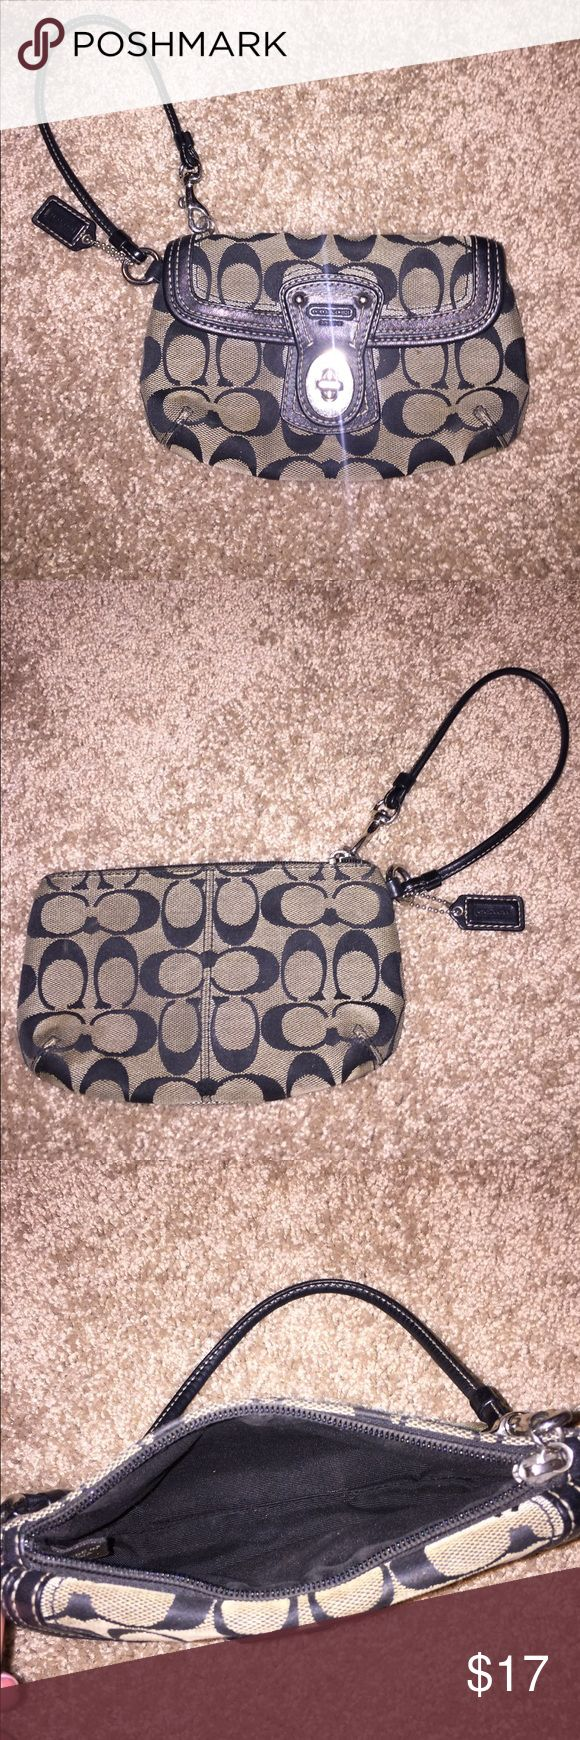 Black Coach Wristlet- going out is fun again! This classic black Coach wristlet just made your Saturday night more convenient! This clutch fits your ID, credit card, cash, lipstick, tampon, and iPhone easily. Everything you need for a night on the town will fit in this perfect wristlet! The zippered large pocket stores the essentials while the front clasped pocket is perfect for carrying around the waiter's number you scored on the ticket at Cheesecake Factory. While this wristlet has been…